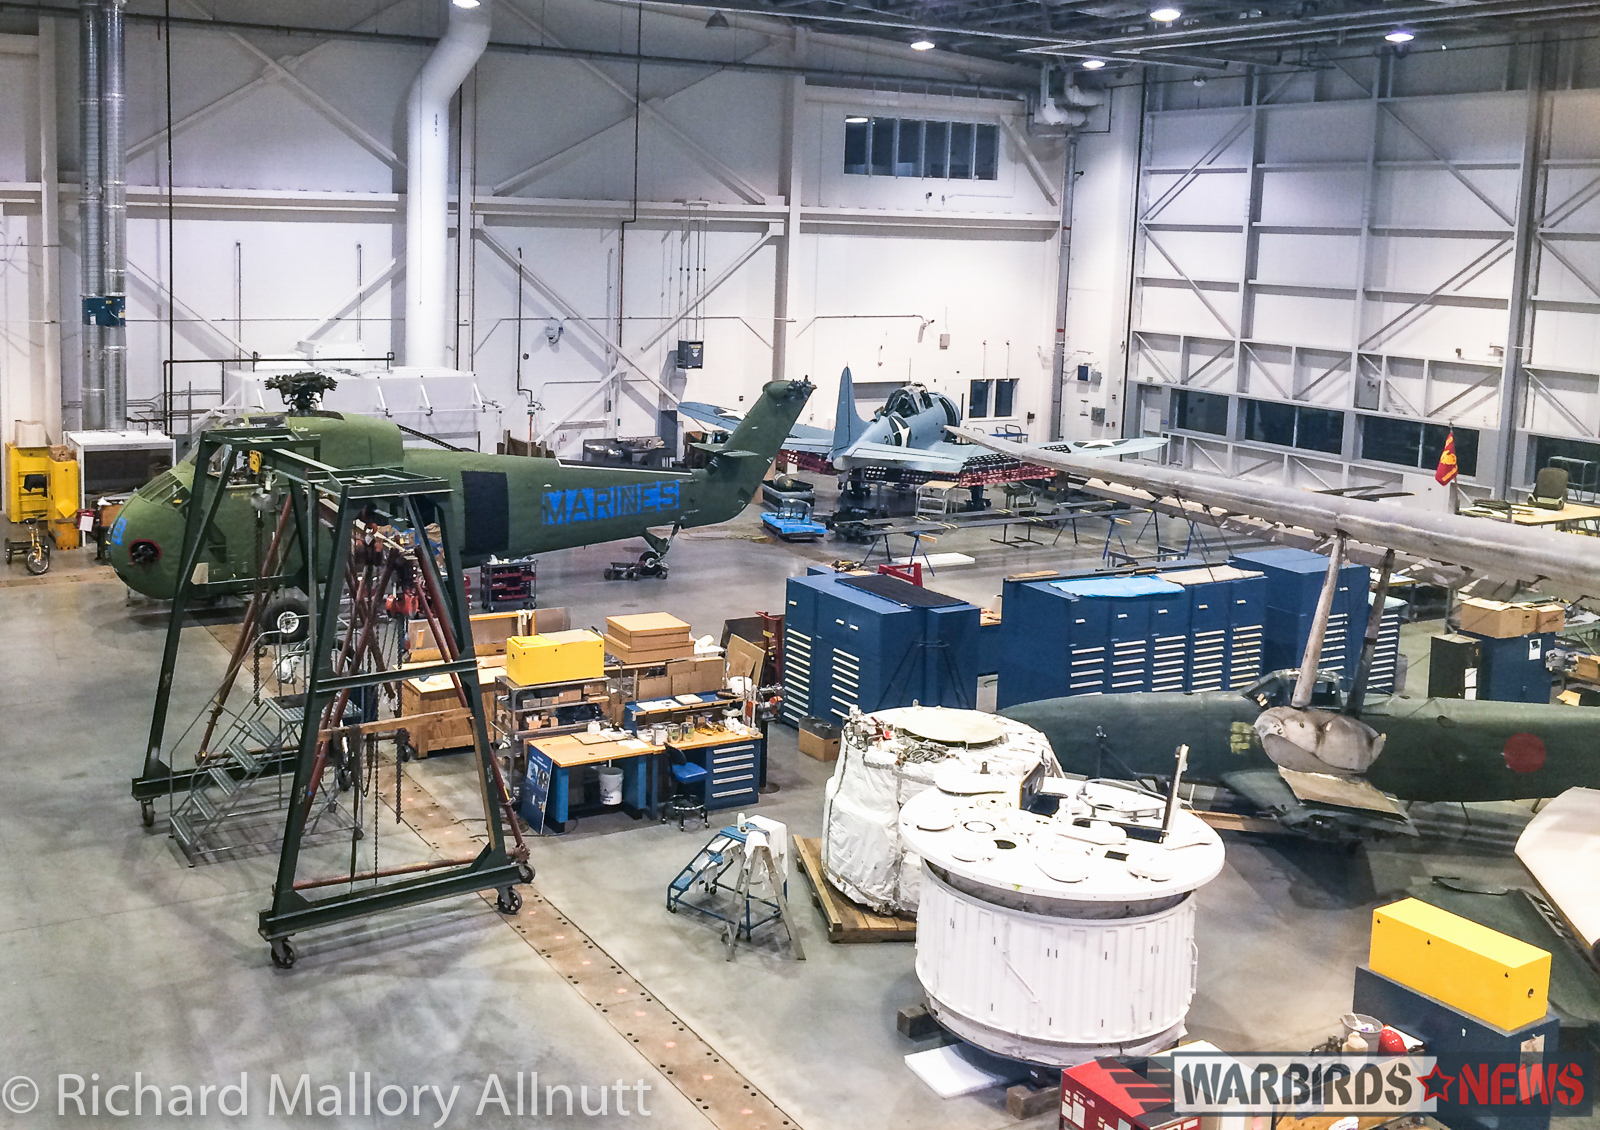 The National Museum of the United States Marine Corps' SBD Dauntless and H-34 can be seen in the distance. The H-34 was airworthy, until fairly recently, but couldn't find a buyer so the owners donated her to the Corps. She, along with the Dauntless, will soon be going on display in the main atrium of their new home. (photo by Richard Mallory Allnutt)